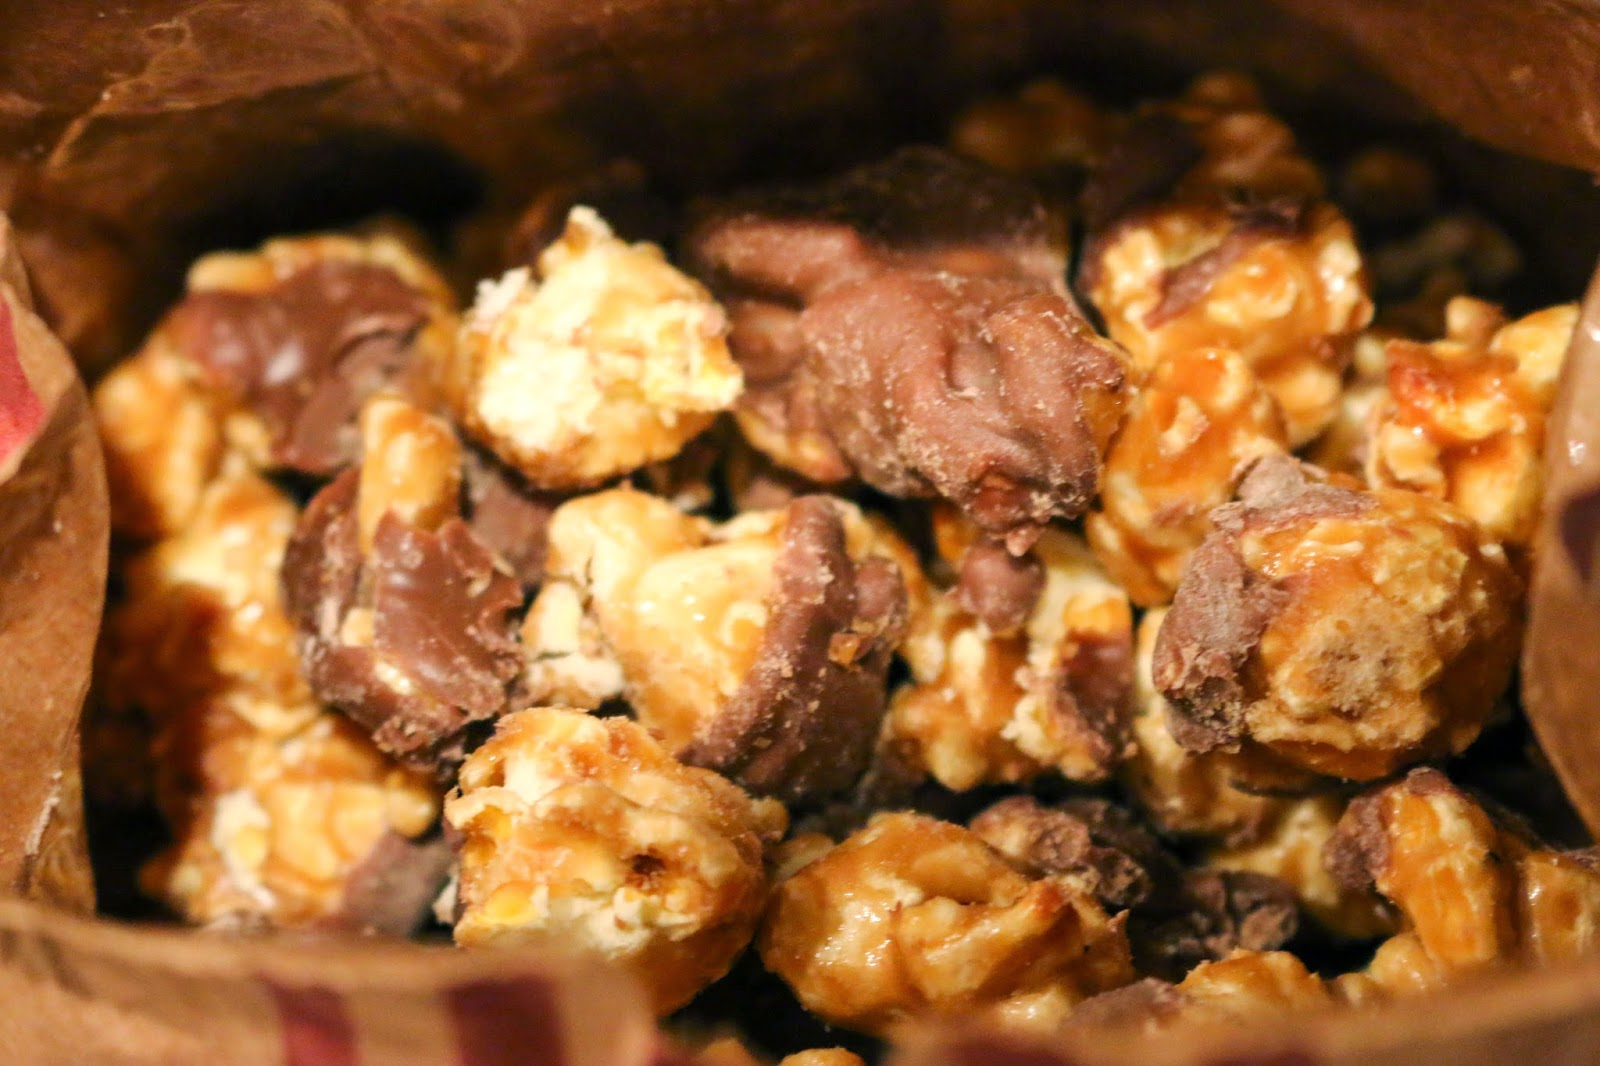 Philly Food Blog: Go Popcorn Chocolate Caramel Popcorn